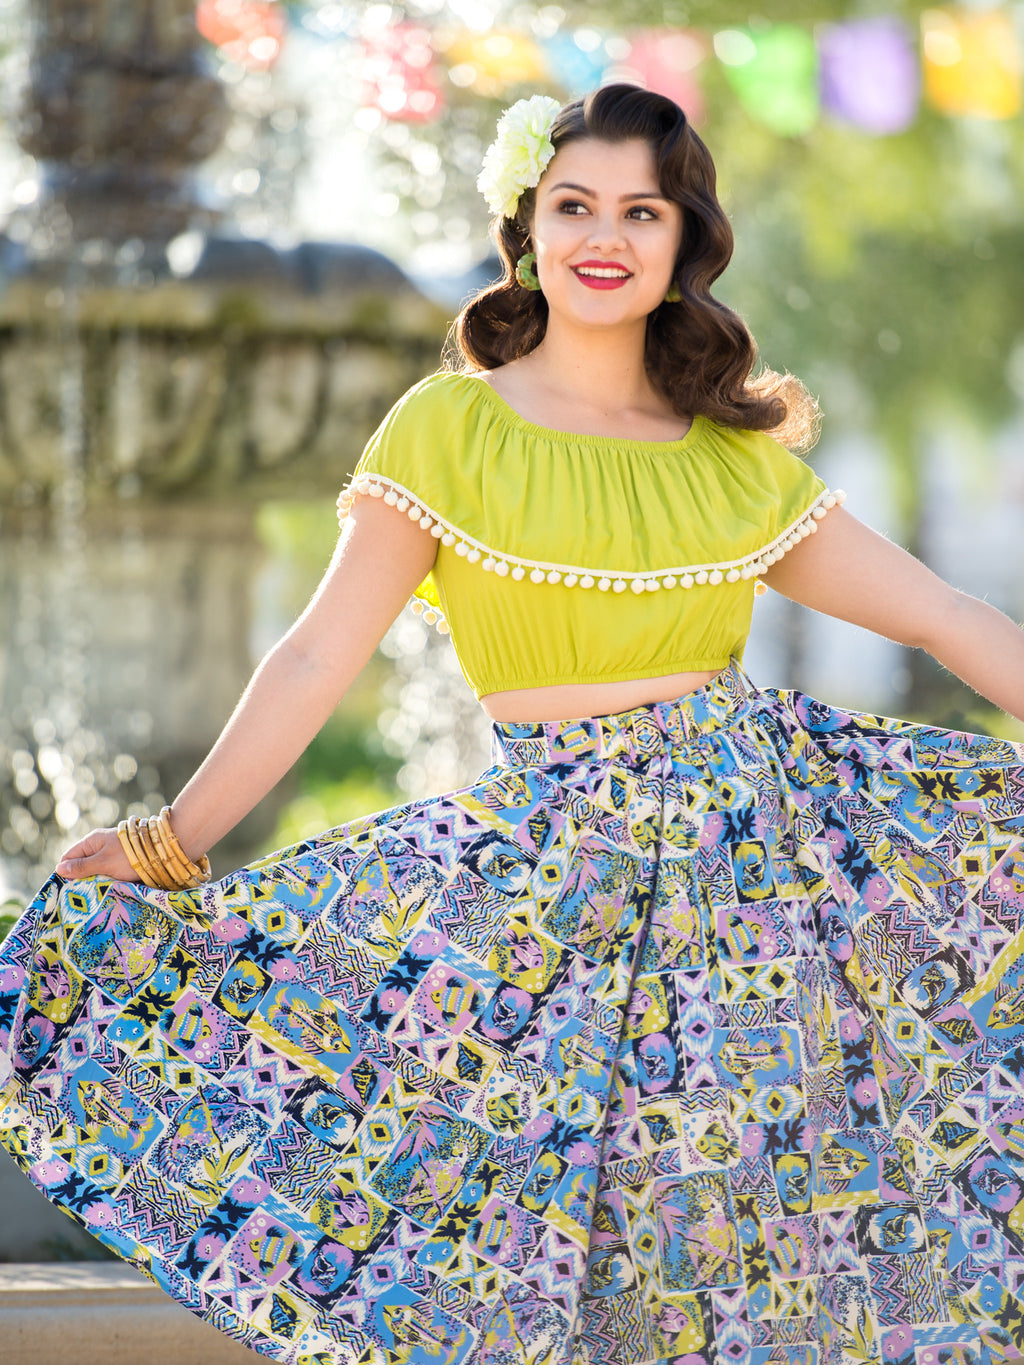 Twirl Skirt Tikitastic Tiki Tikio Tiki Oasis Hawaiian Print Aloha Lime  Matching Belt Pockets Mid Century Modern Vintage Inspired Pinup Clothing Retro Rockabilly 1950s Made in the USA